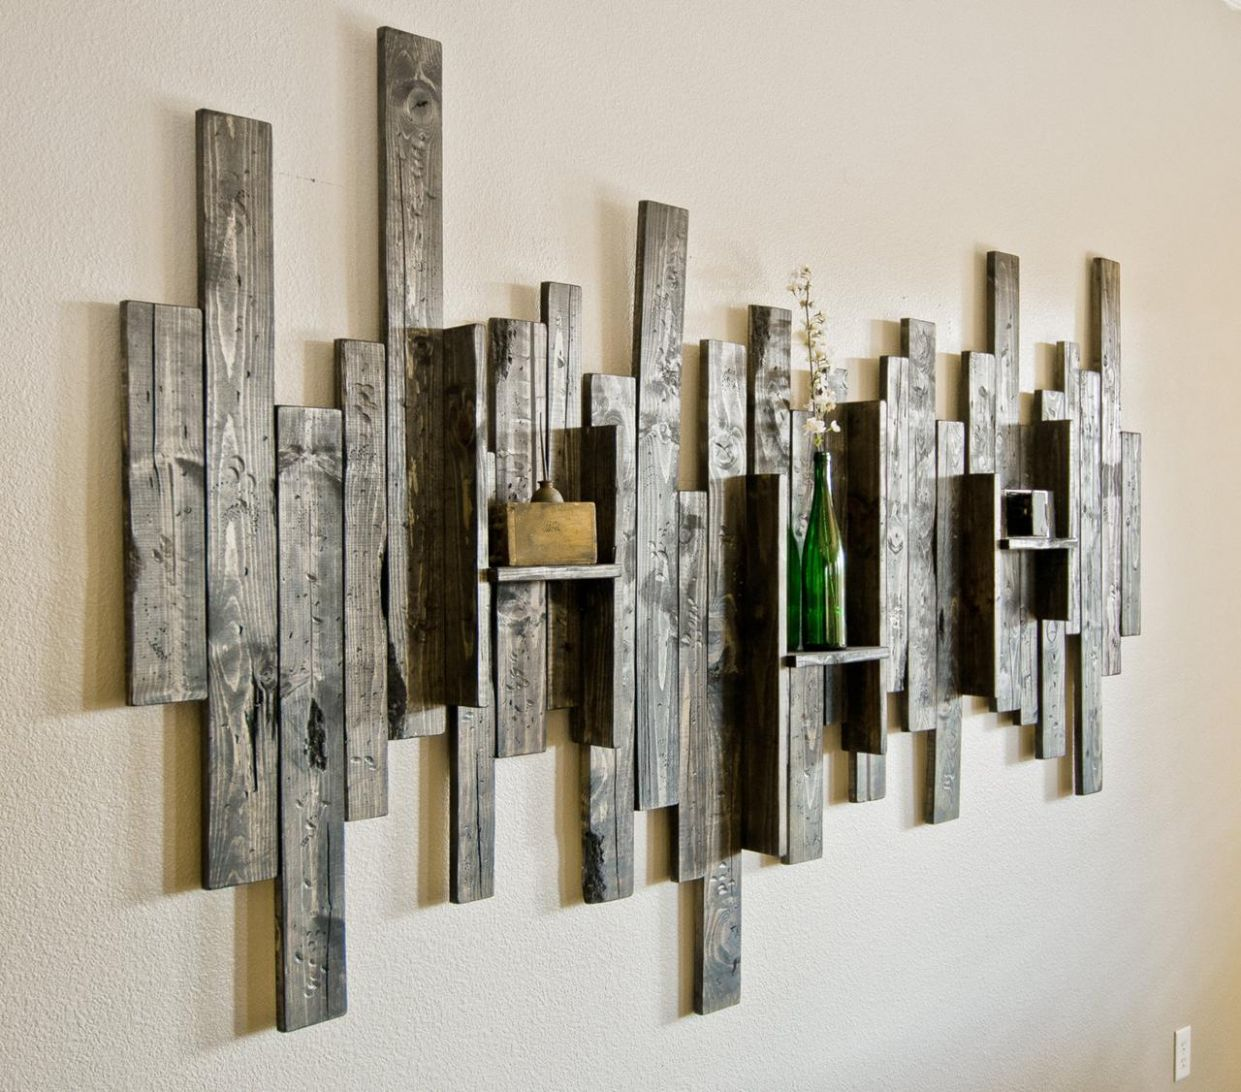 Abstract Wall Art and Shelf from Rustic Barn Wood - Decoration Ideas - wall decor ideas with wood